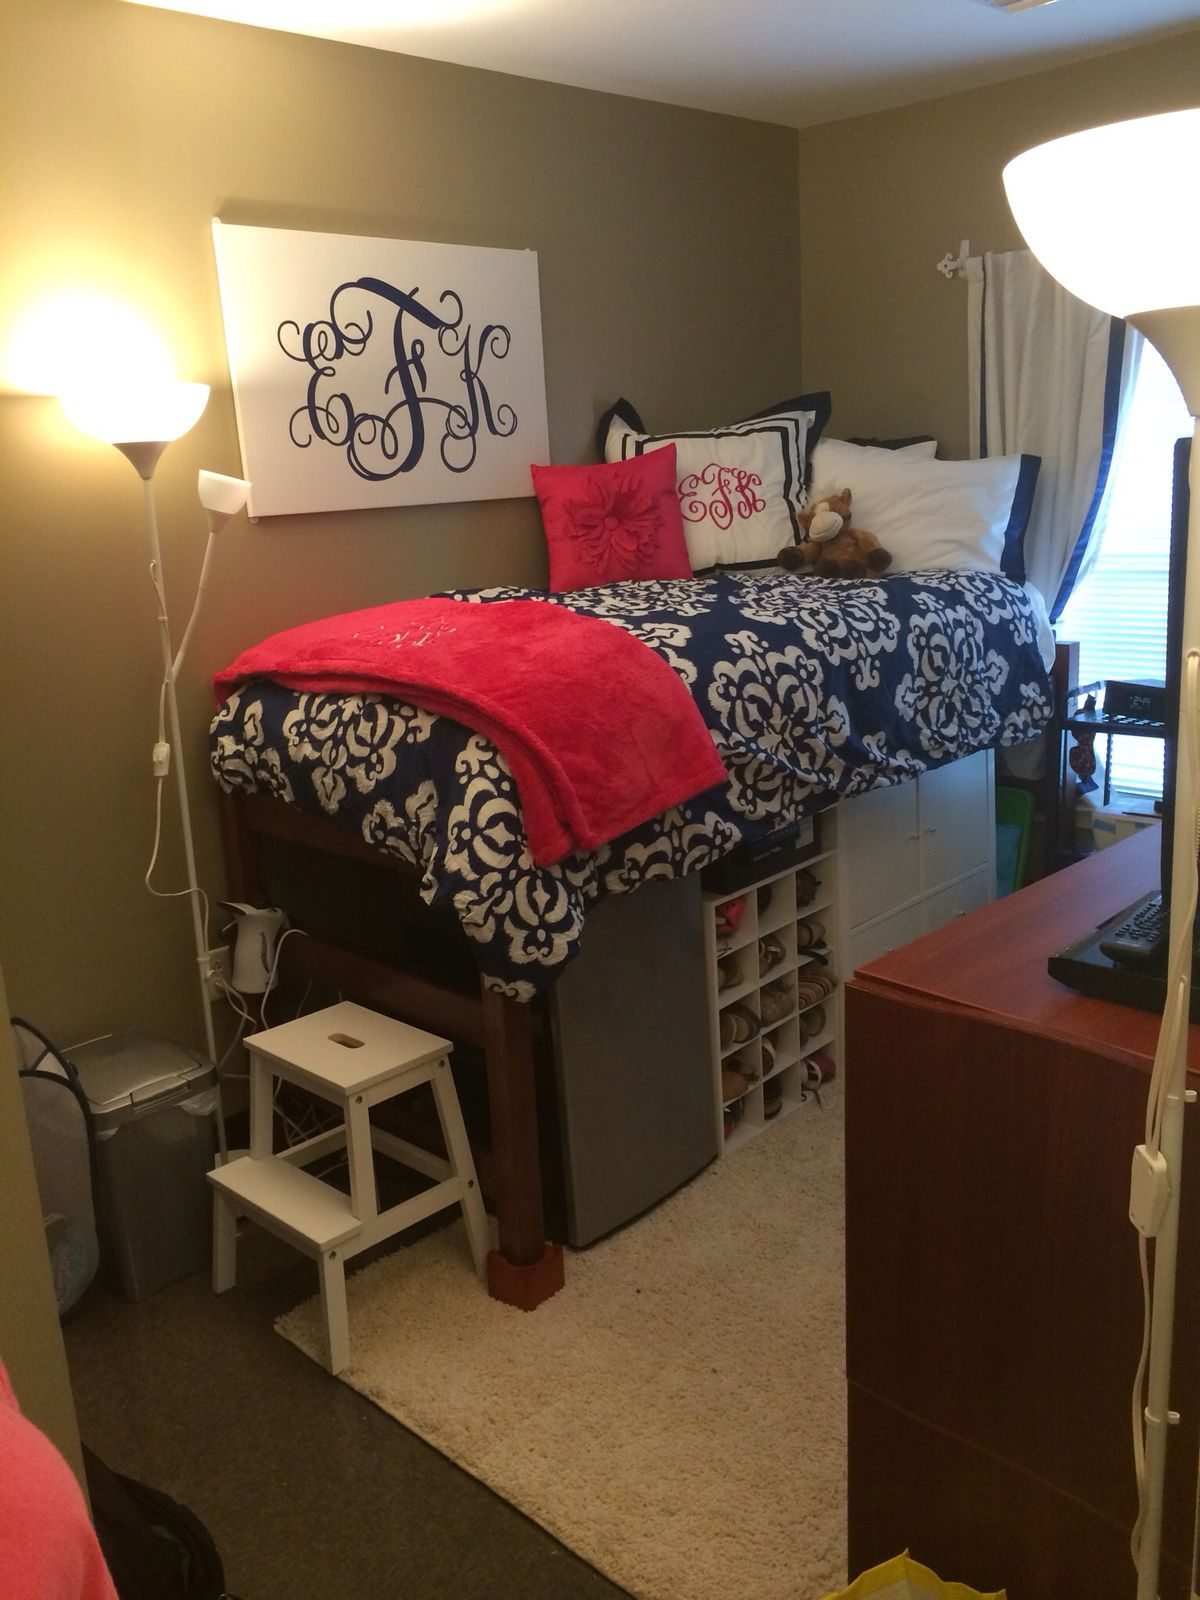 Stool but not sure of the bed do you like it too 2 princess bedroom - Great Dorm Room Organization Step Stool To Get On The Elevated Bed Prepping For College Life Pinterest Dorm Room Organization Dorm Room And Dorm